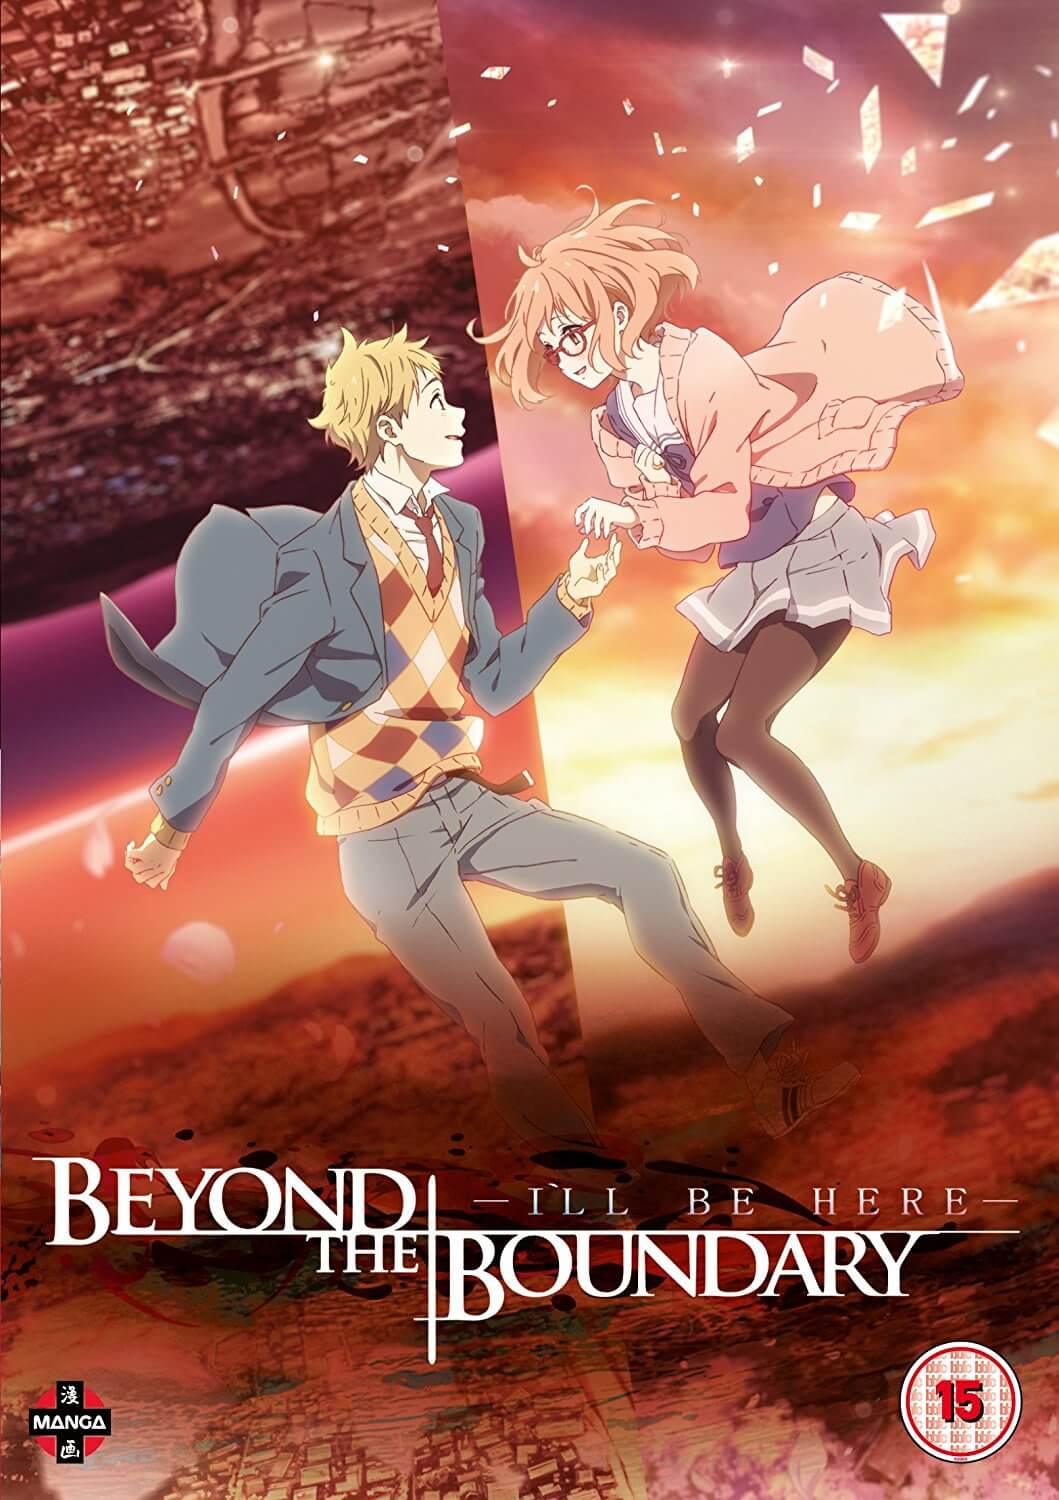 Beyond The Boundary The Movie: I